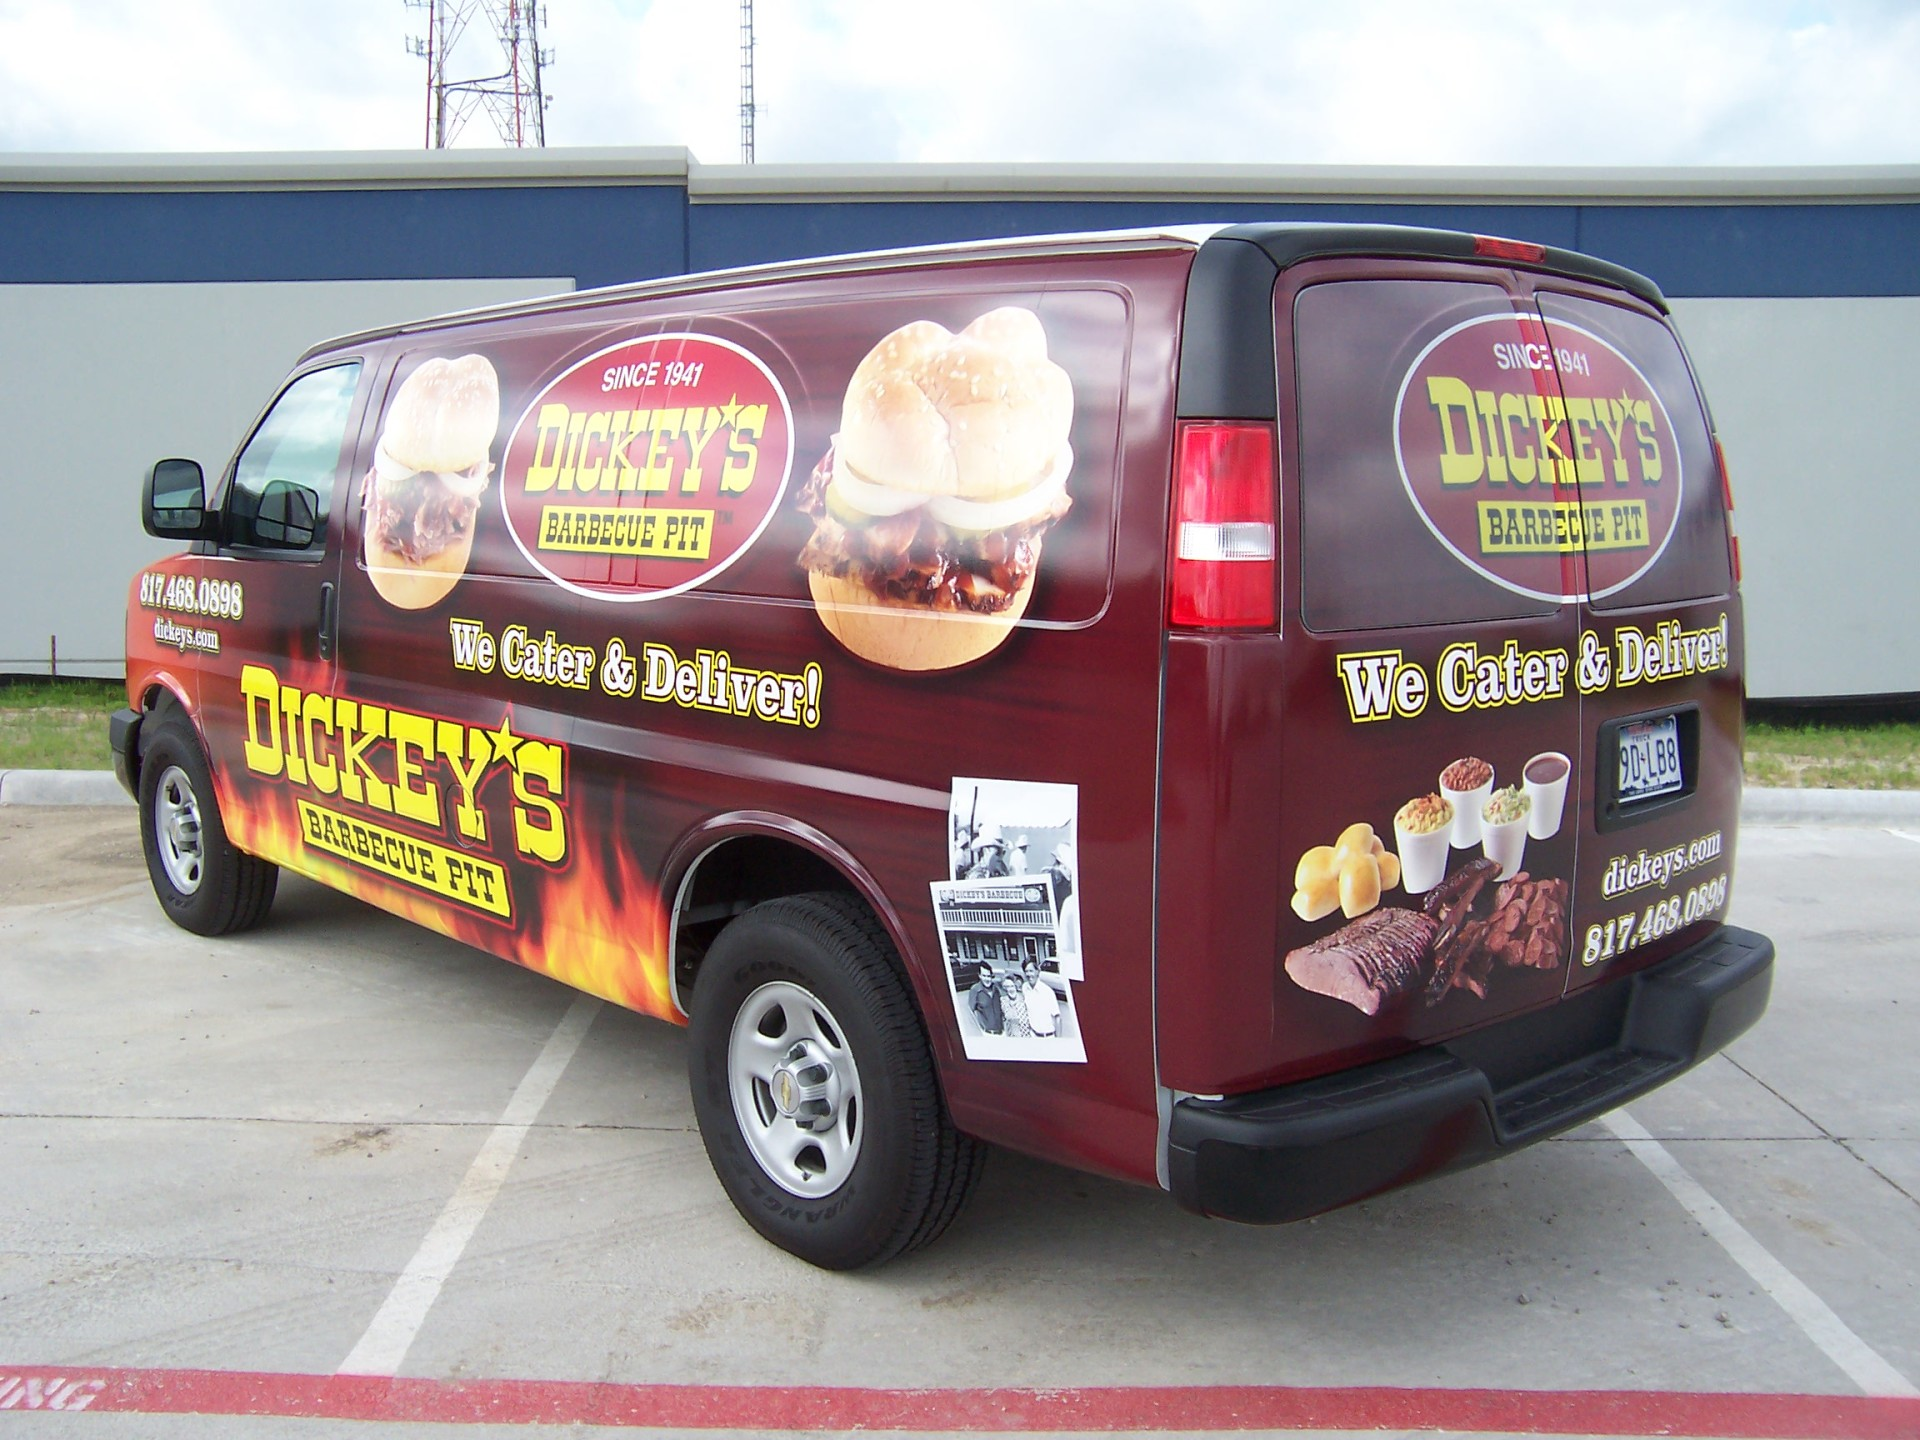 Dickey's Arlington Tx, Dickey's Vehicle wraps, Vehicle wraps Dallas TX